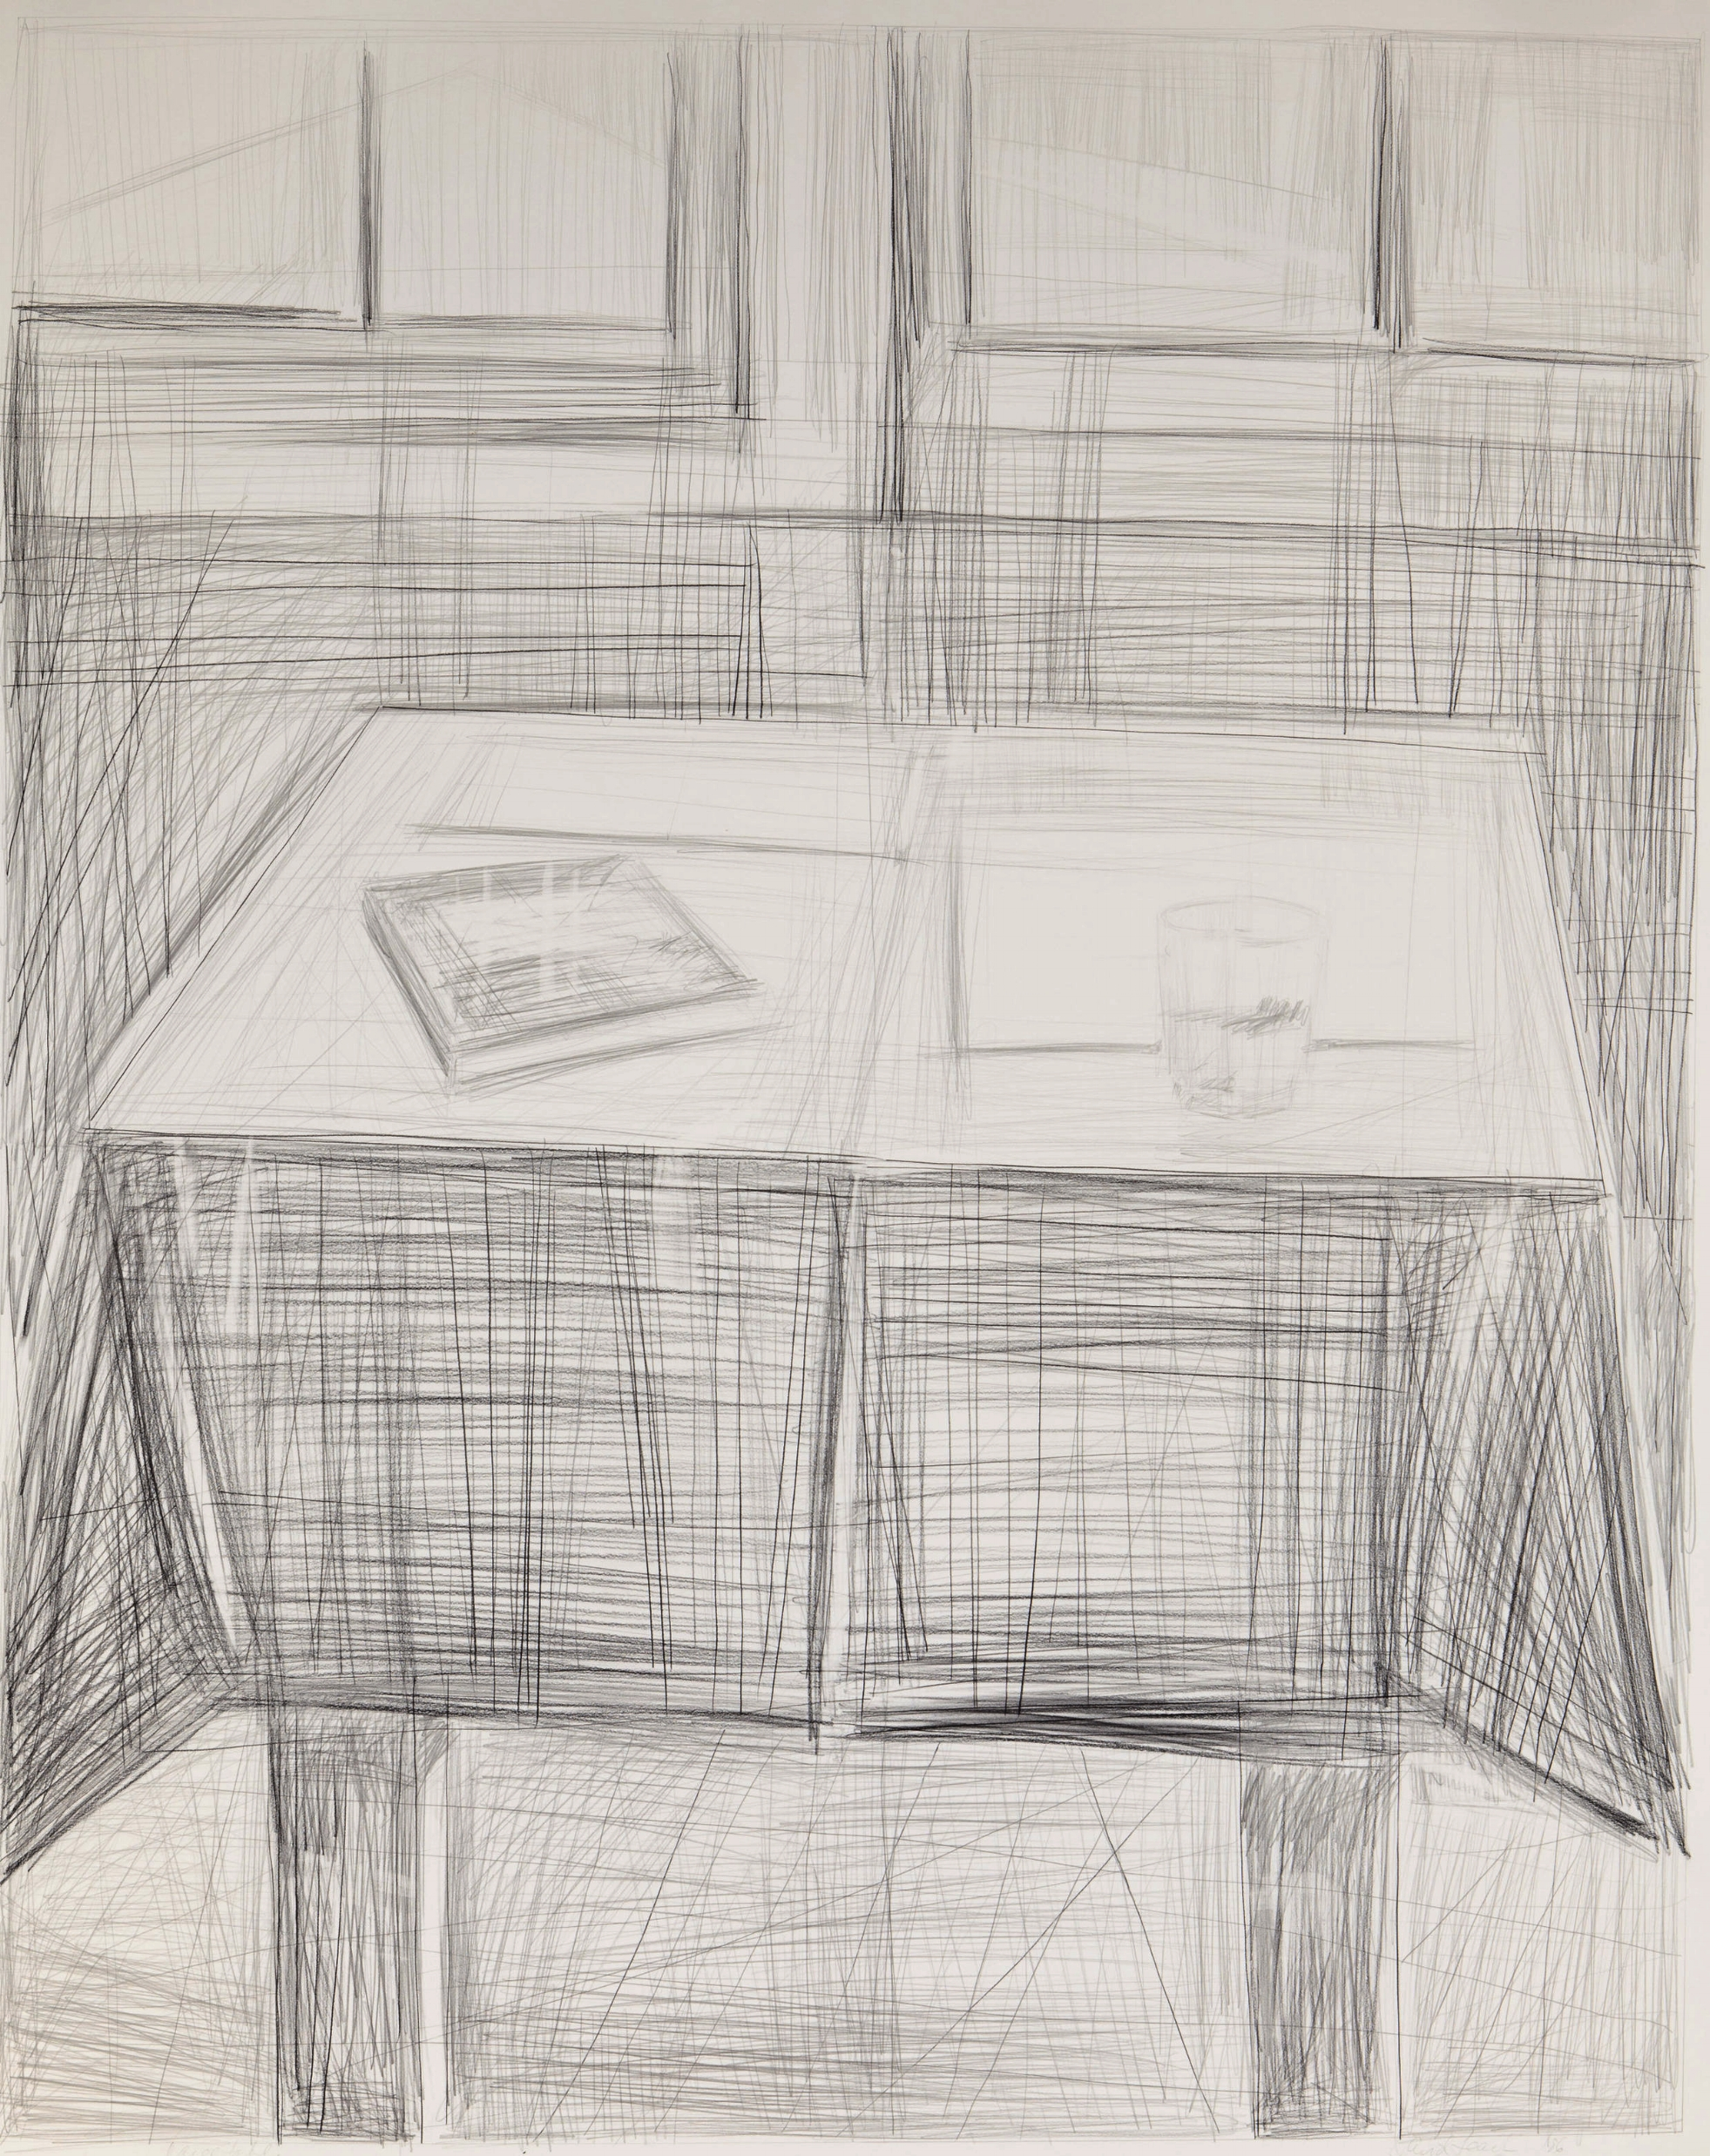 Large Table  .  1986. 58 × 46 in., graphite and charcoal pencil